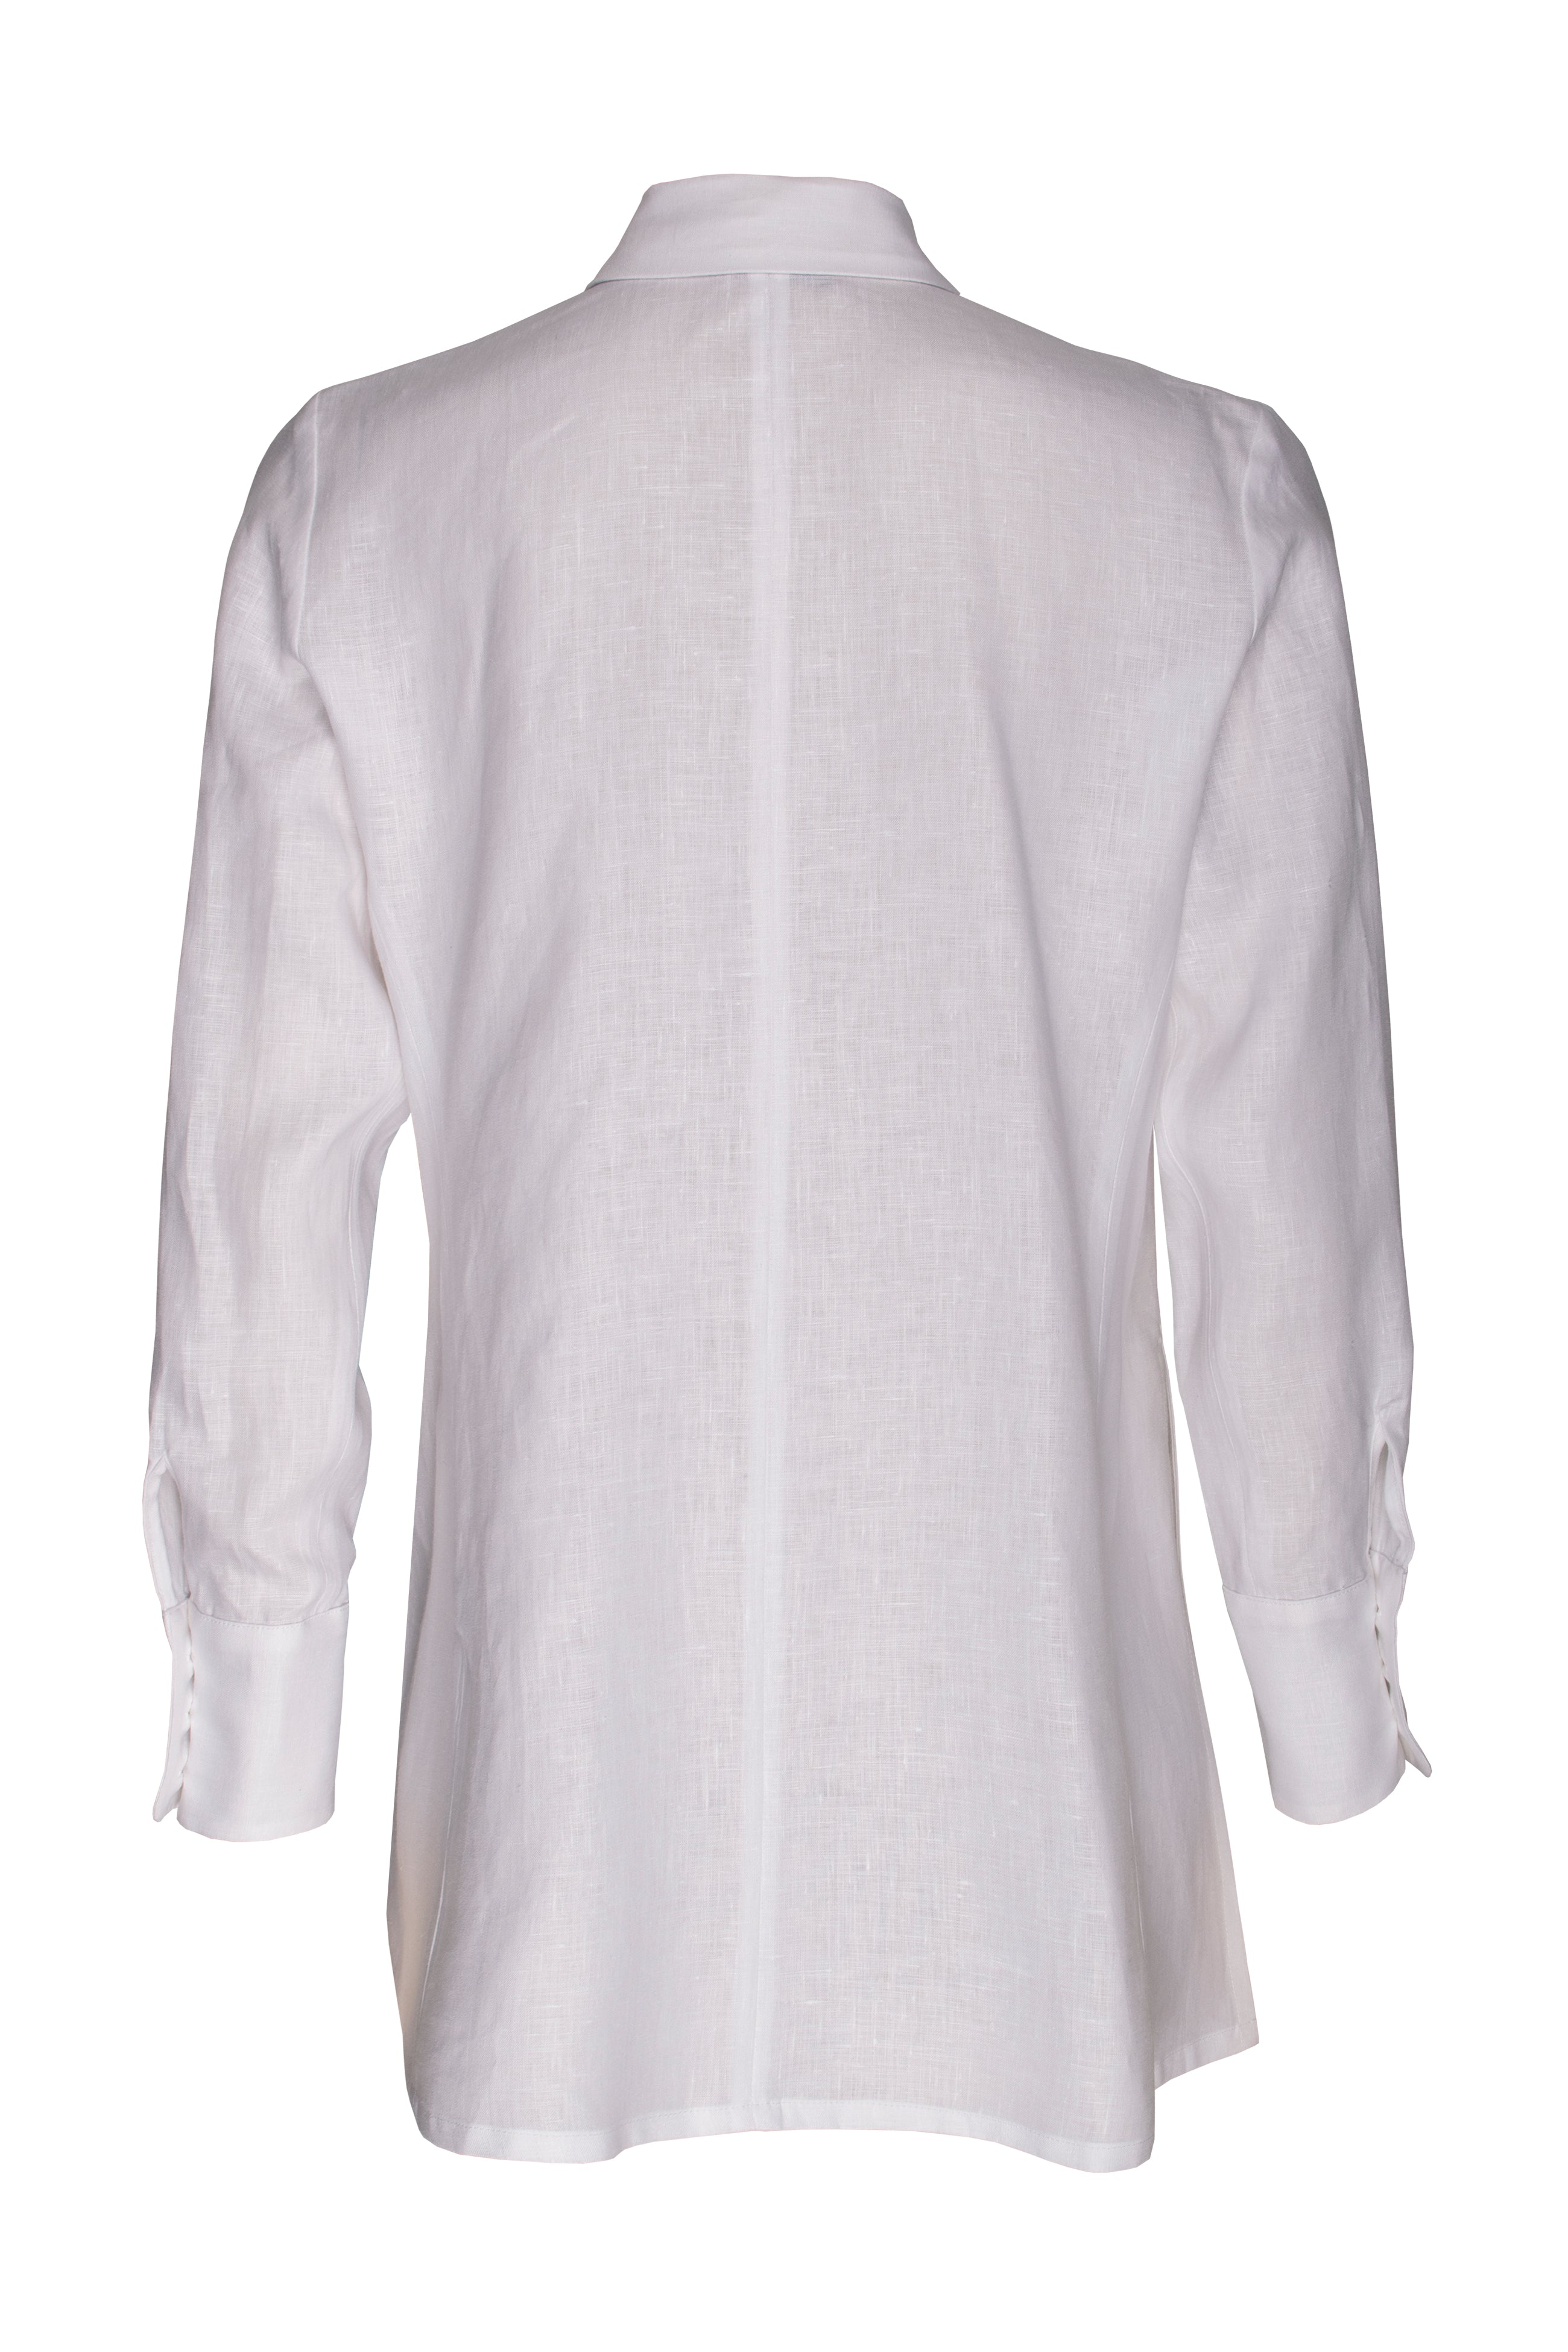 White Linen 4 Button Shirt 6211